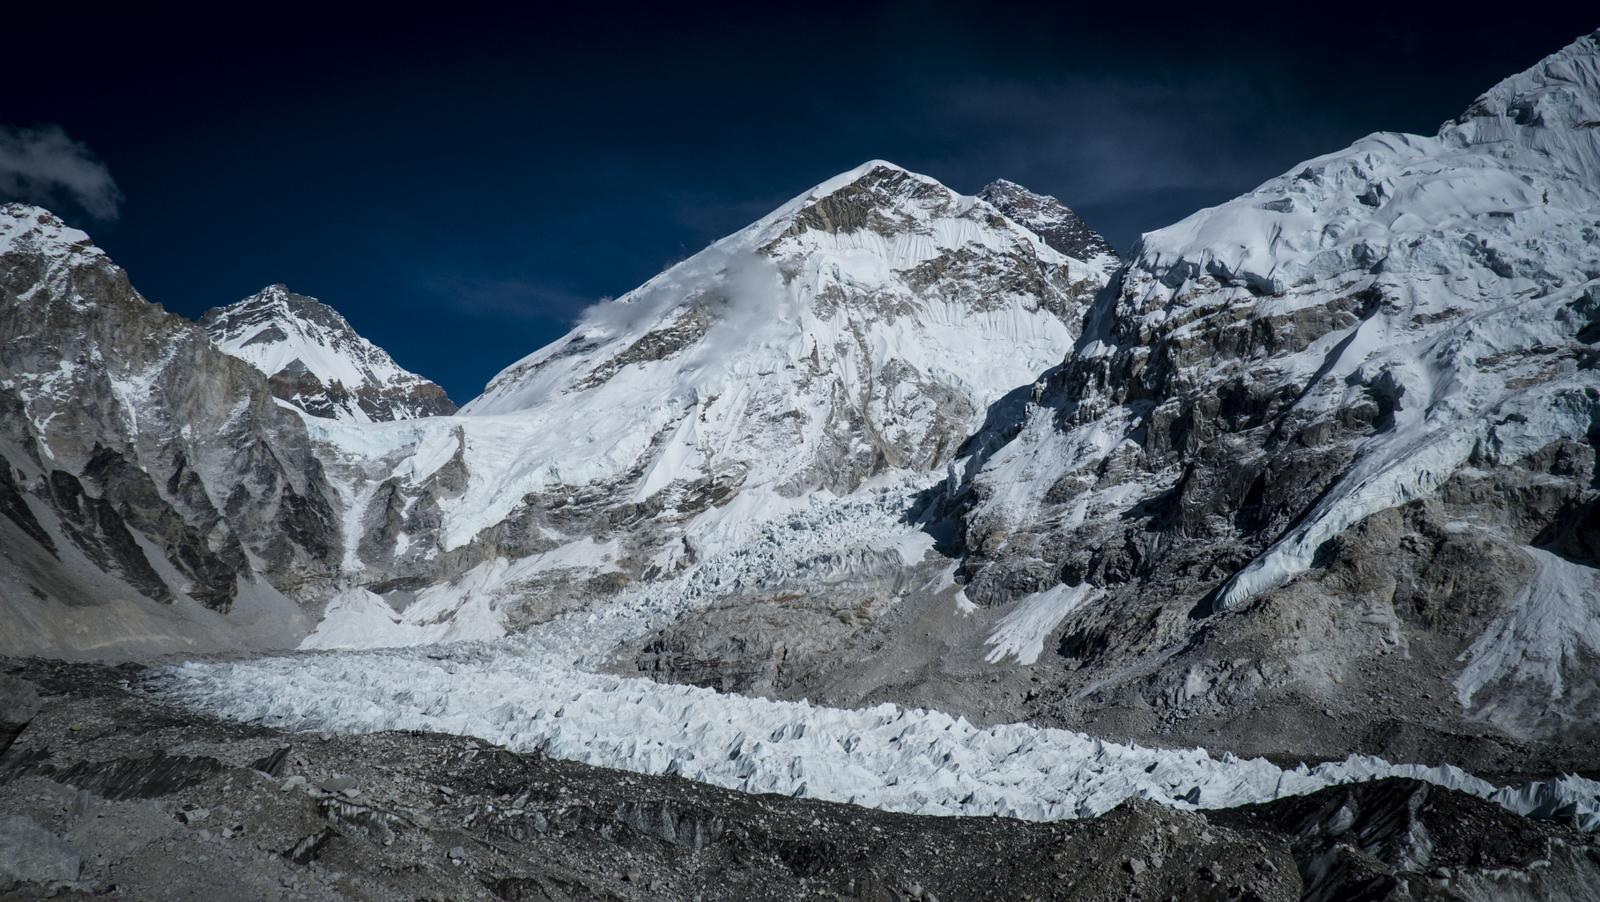 The Khumbu Ice Fall leads the way to the base of Mt Everest.